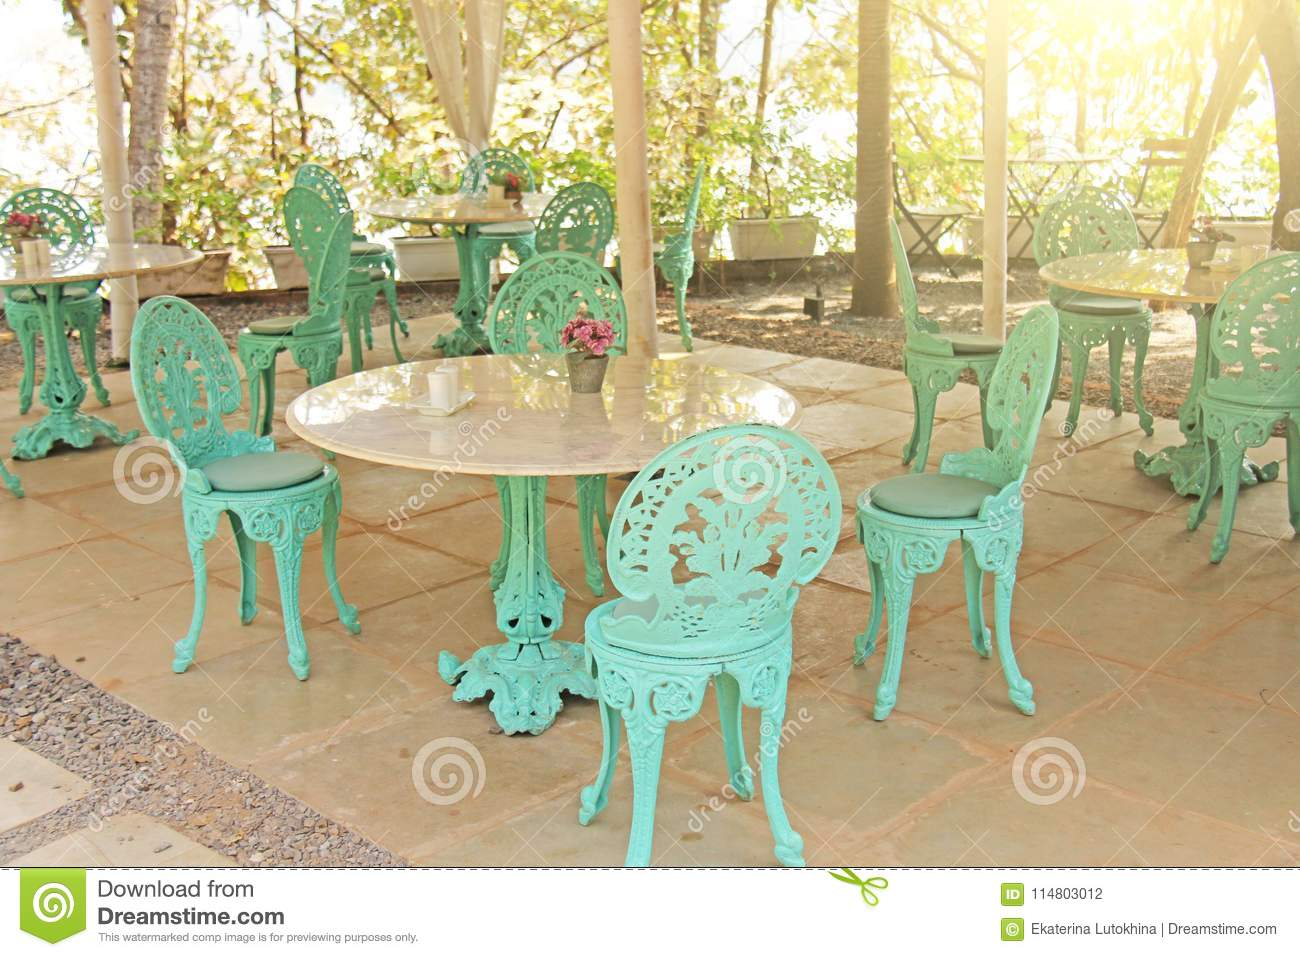 1 153 Cafe Interior Marble Photos Free Royalty Free Stock Photos From Dreamstime